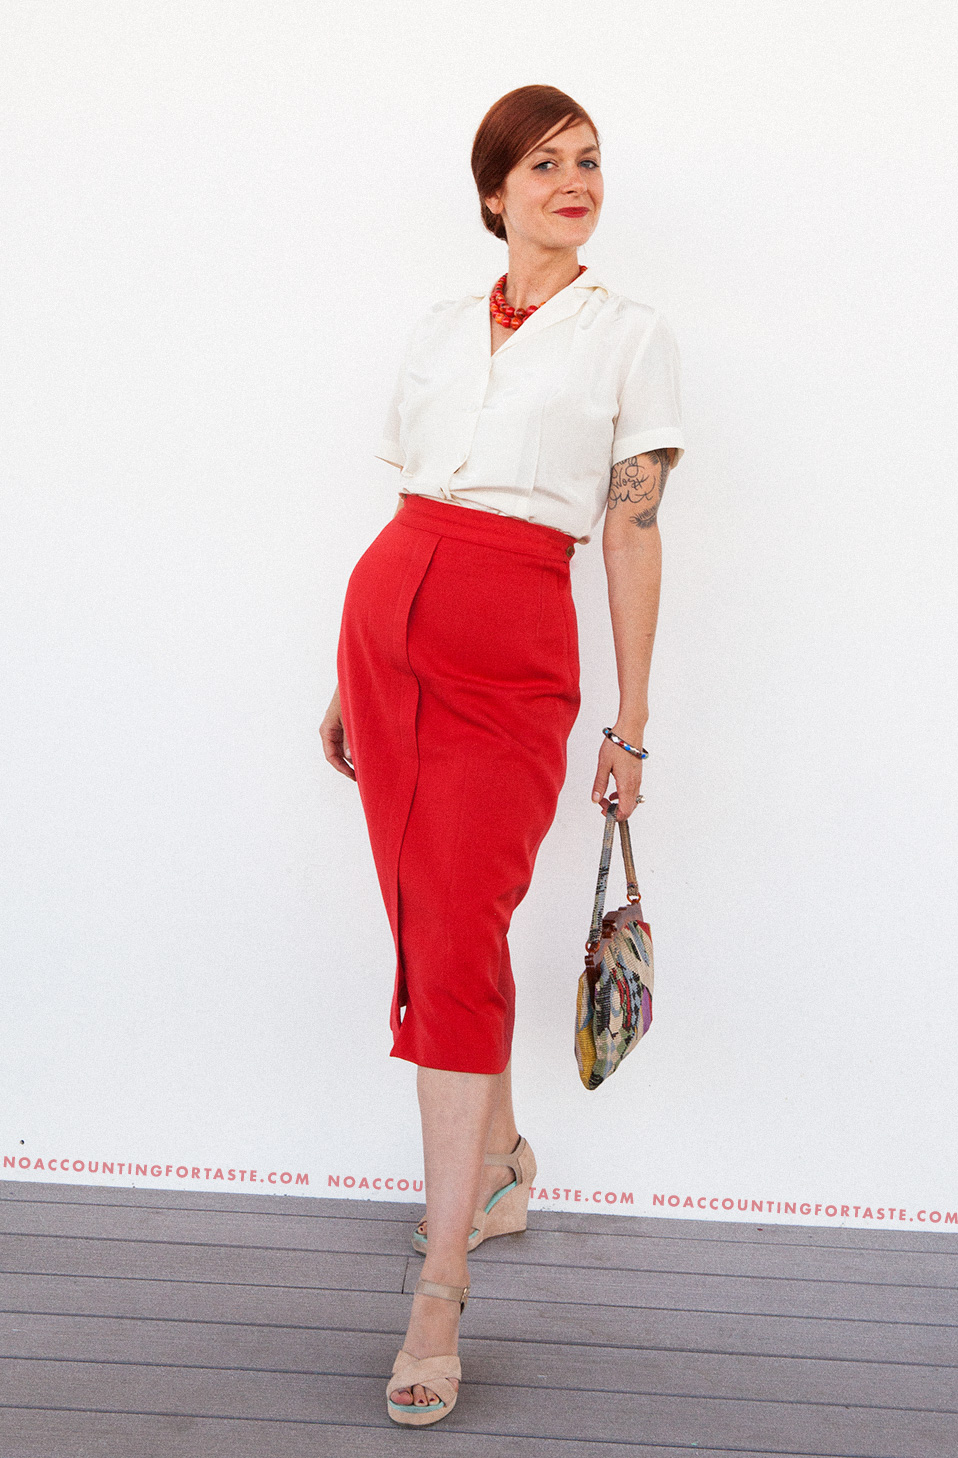 1940s-red-skirt-blouse-playclothes